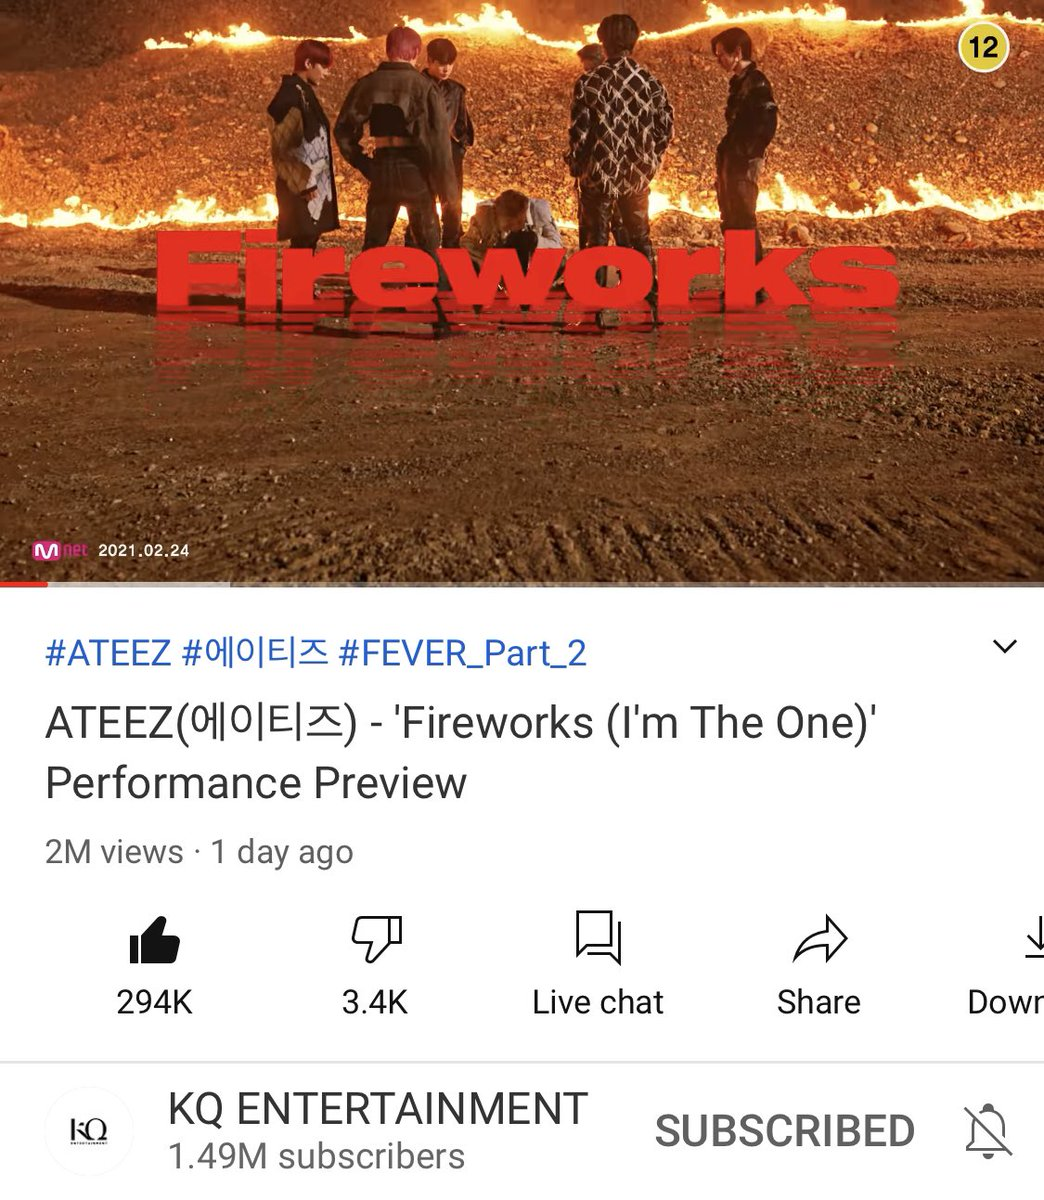 [📢]   ATEEZ(에이티즈) - 불놀이야 (I'm The One) Performance Preview has surpassed 2M views and 294K likes.   🔗:   #ATEEZ #에이티즈 @ATEEZofficial